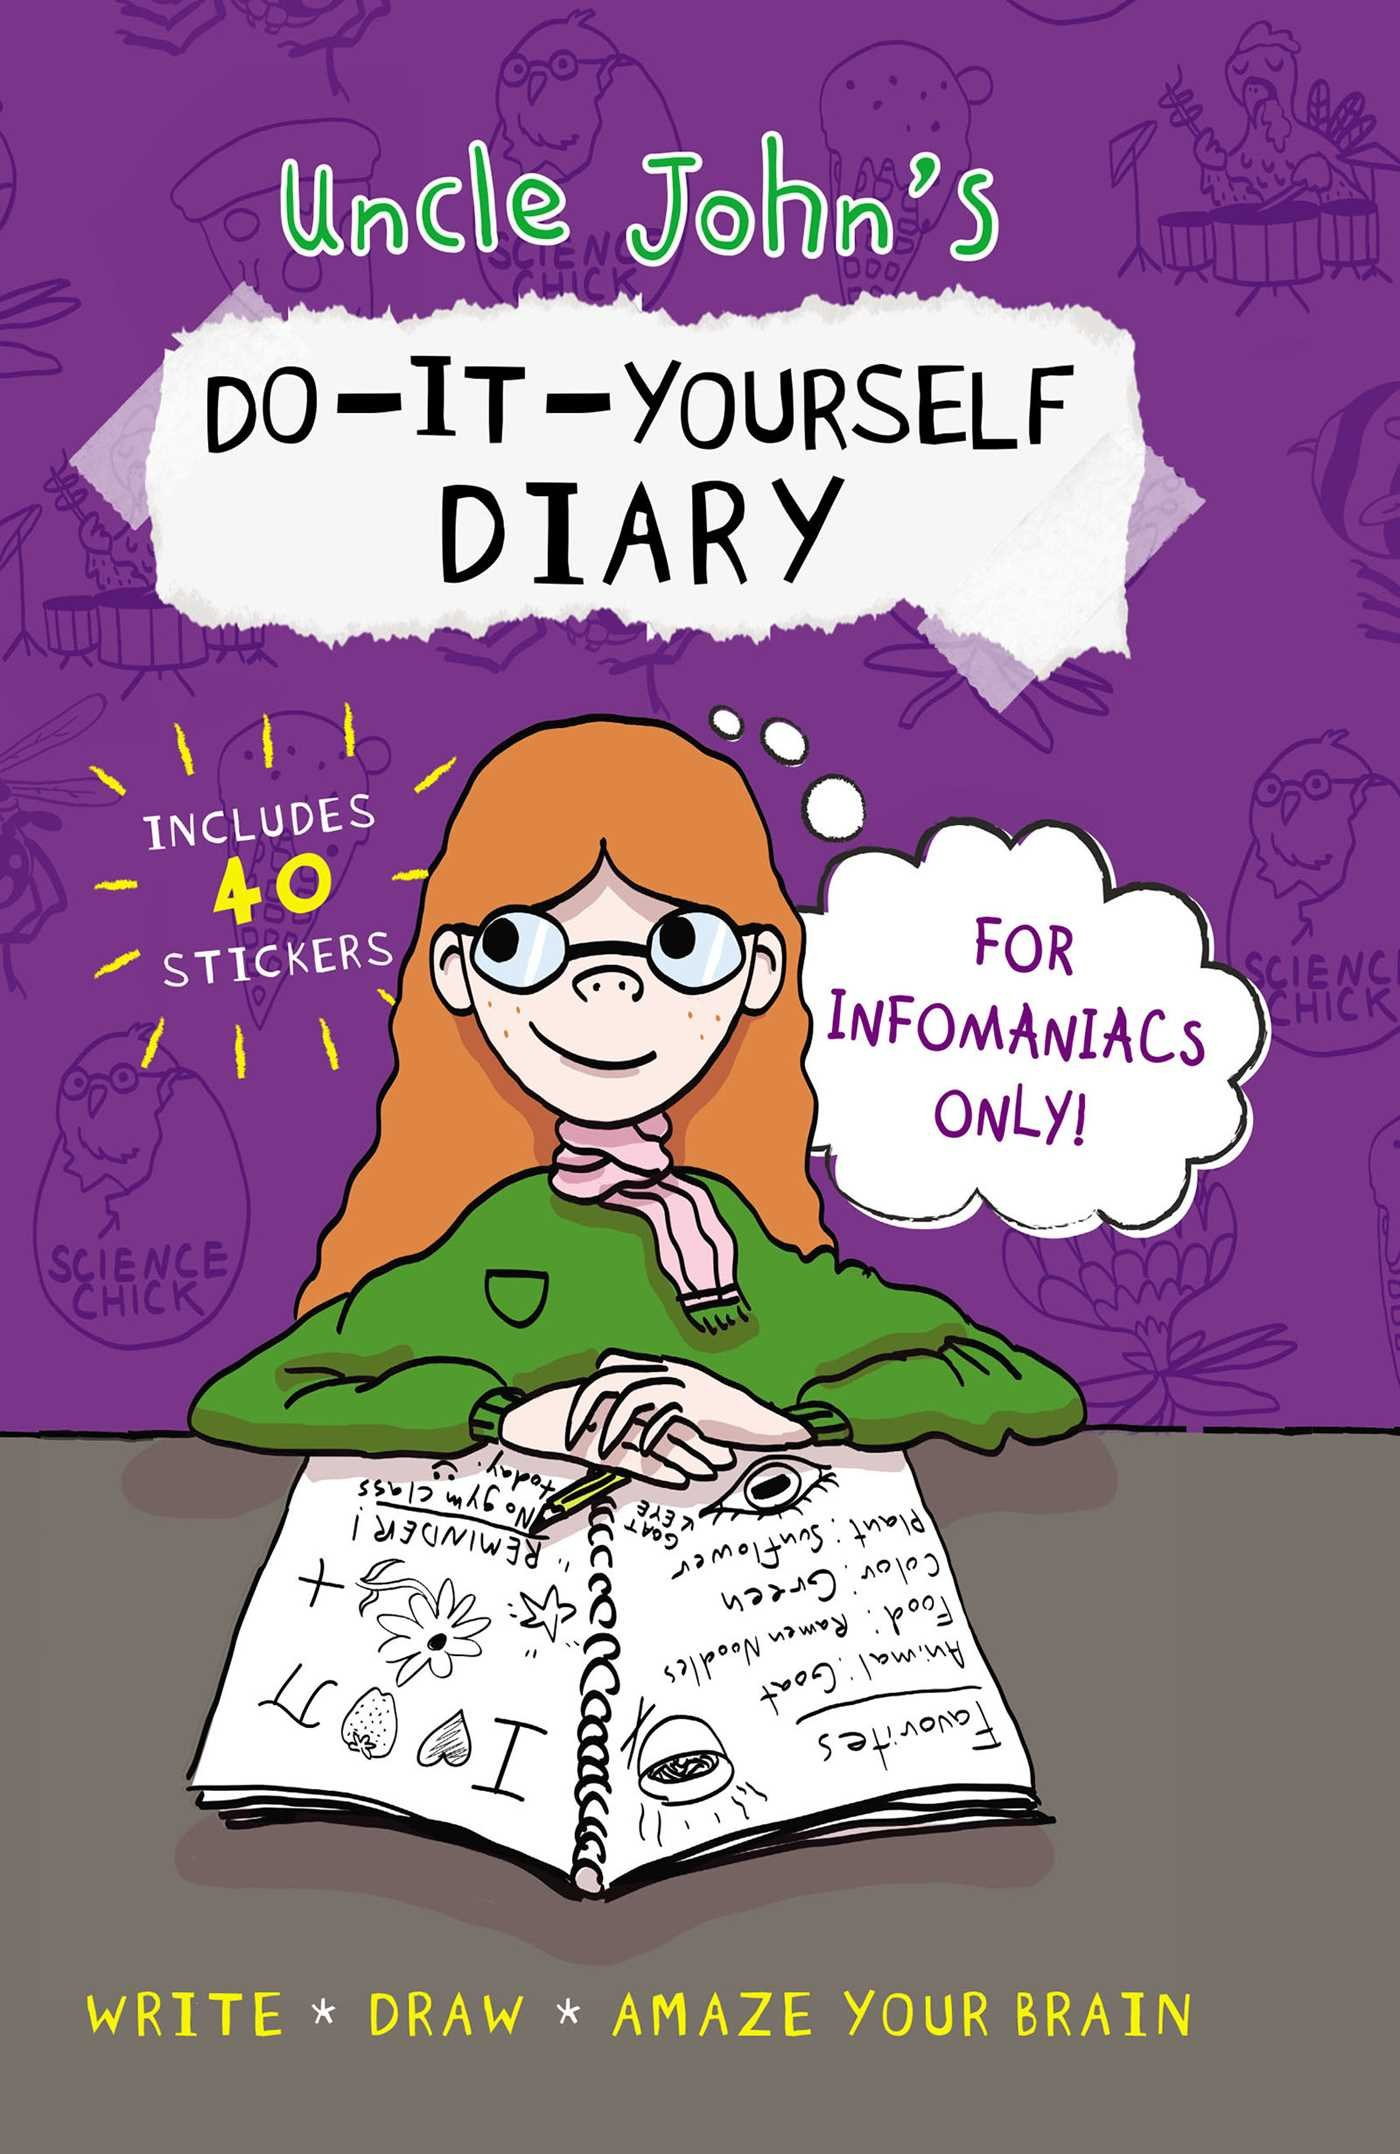 Uncle John's Do-It-Yourself Diary for Infomaniacs Only